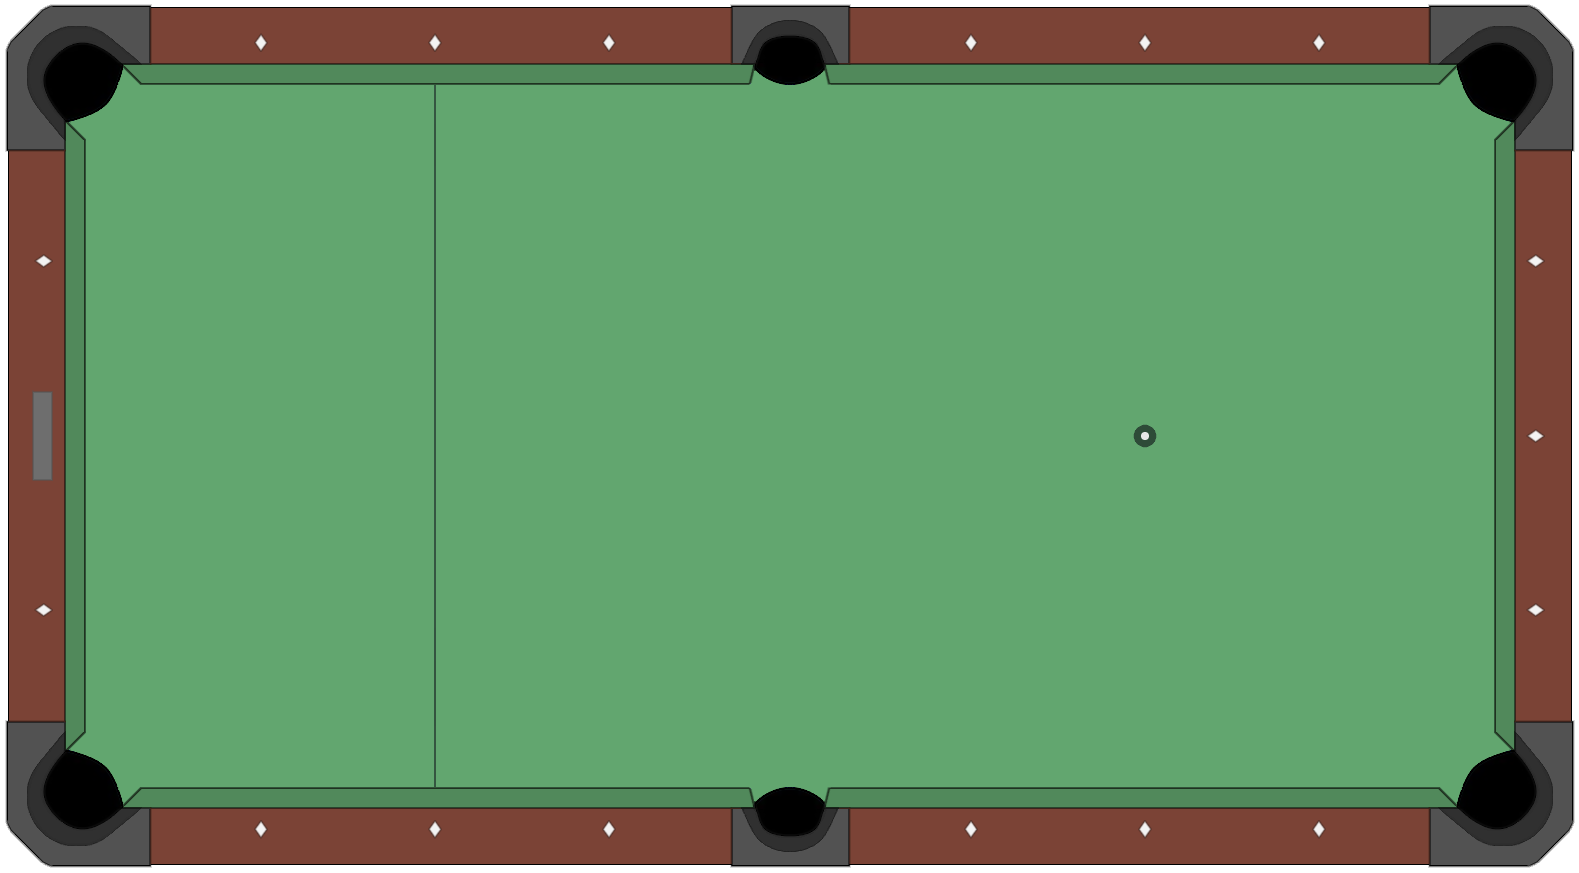 American Style Pool Table Diagram Empty Png 1579 215 873